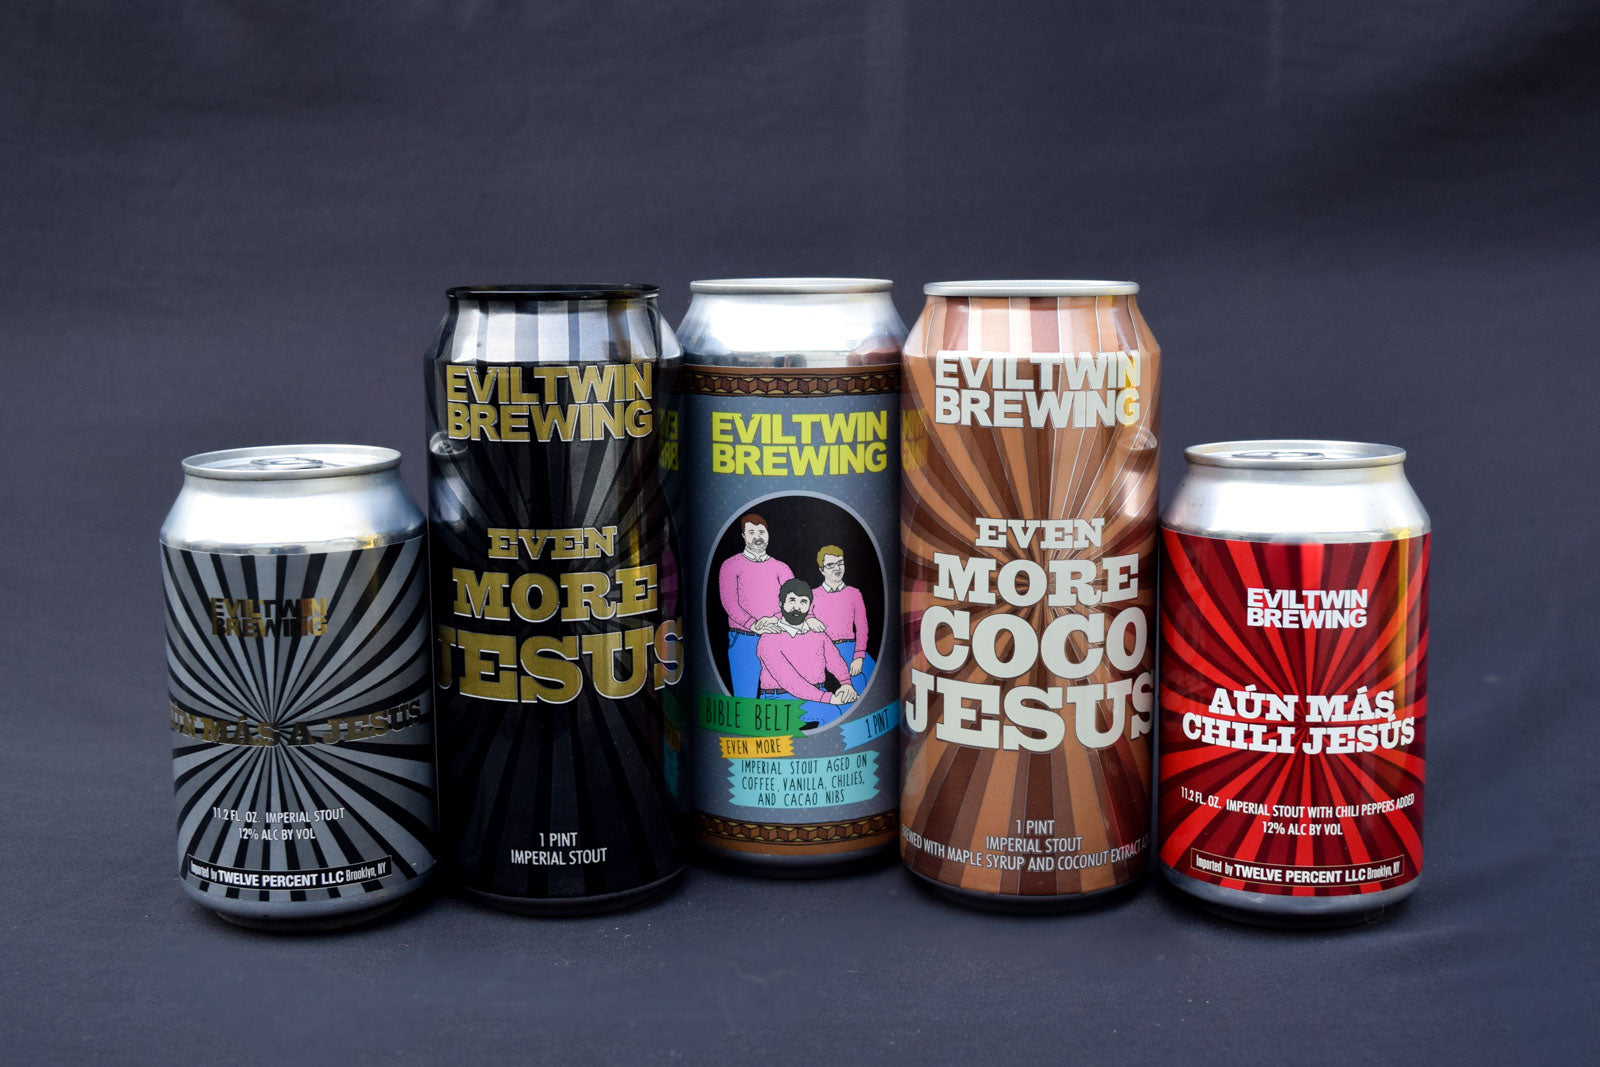 Buy Evil Twin Even More Jesus beers online